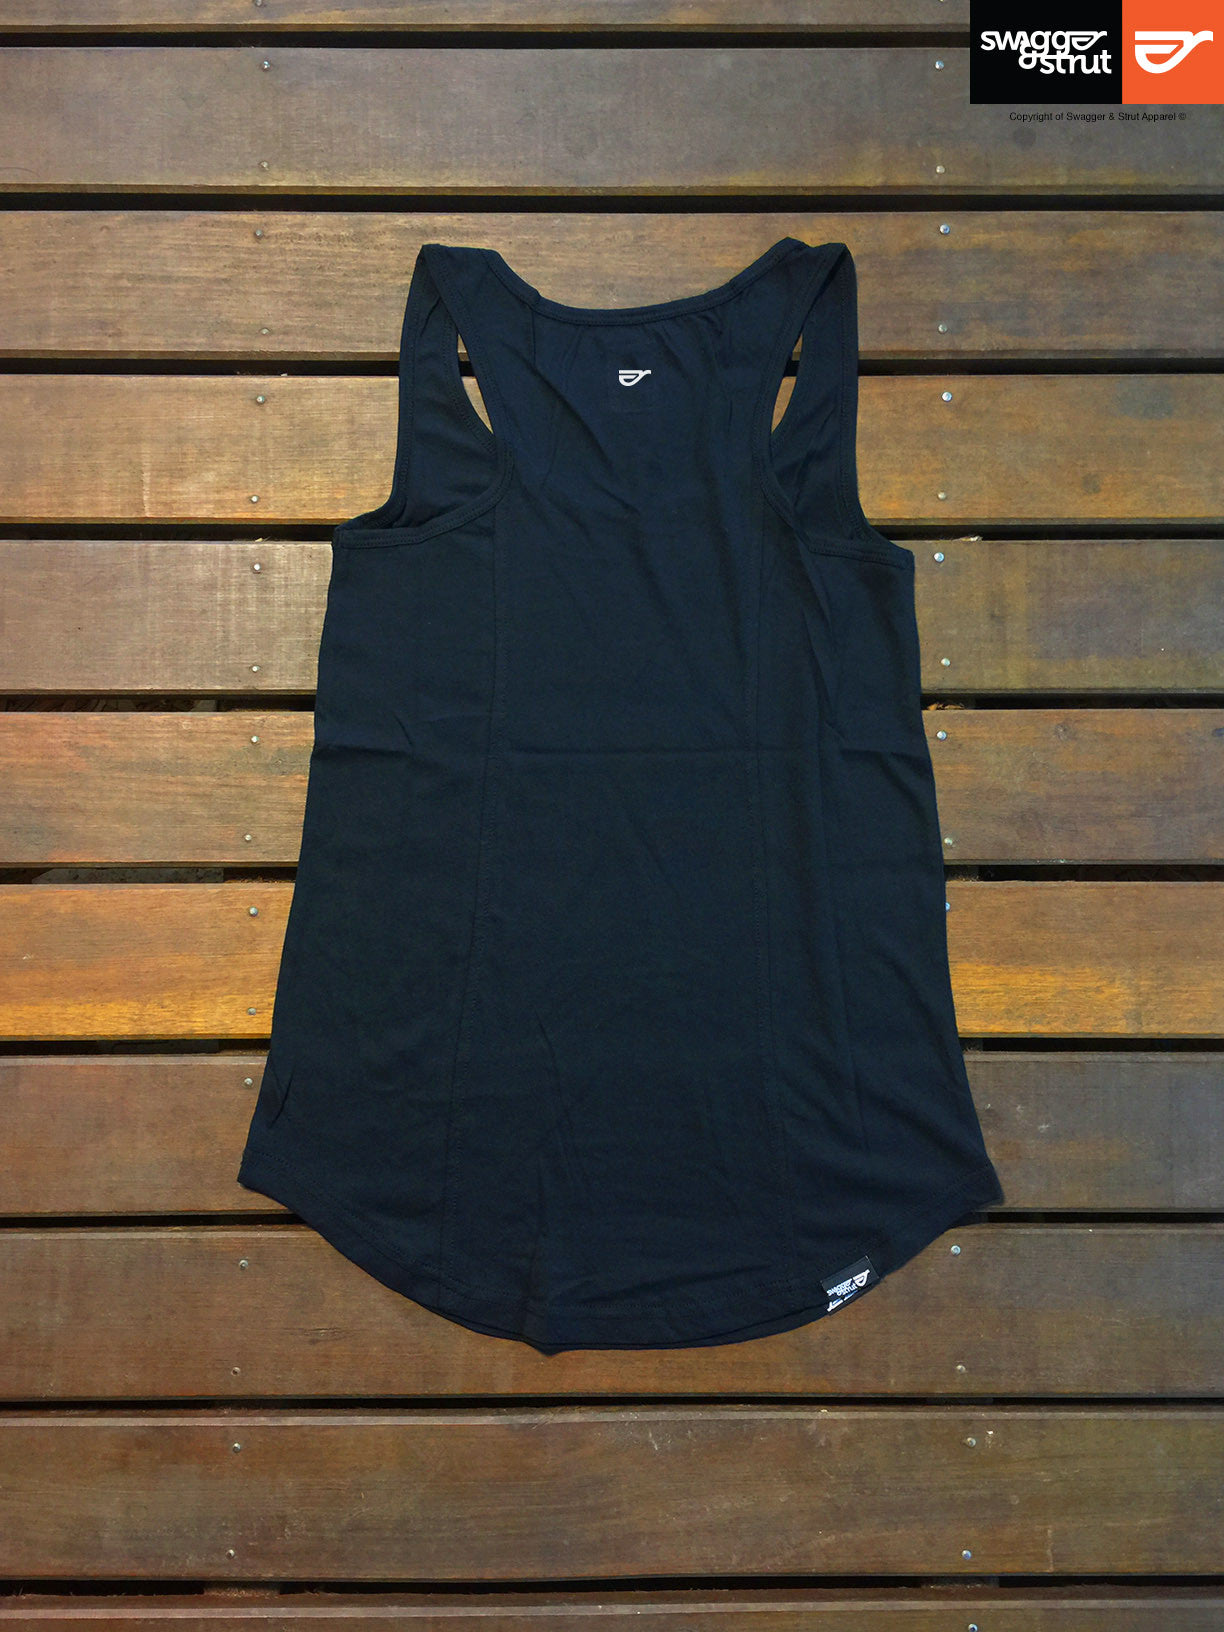 Black - Female Racerback Singlet